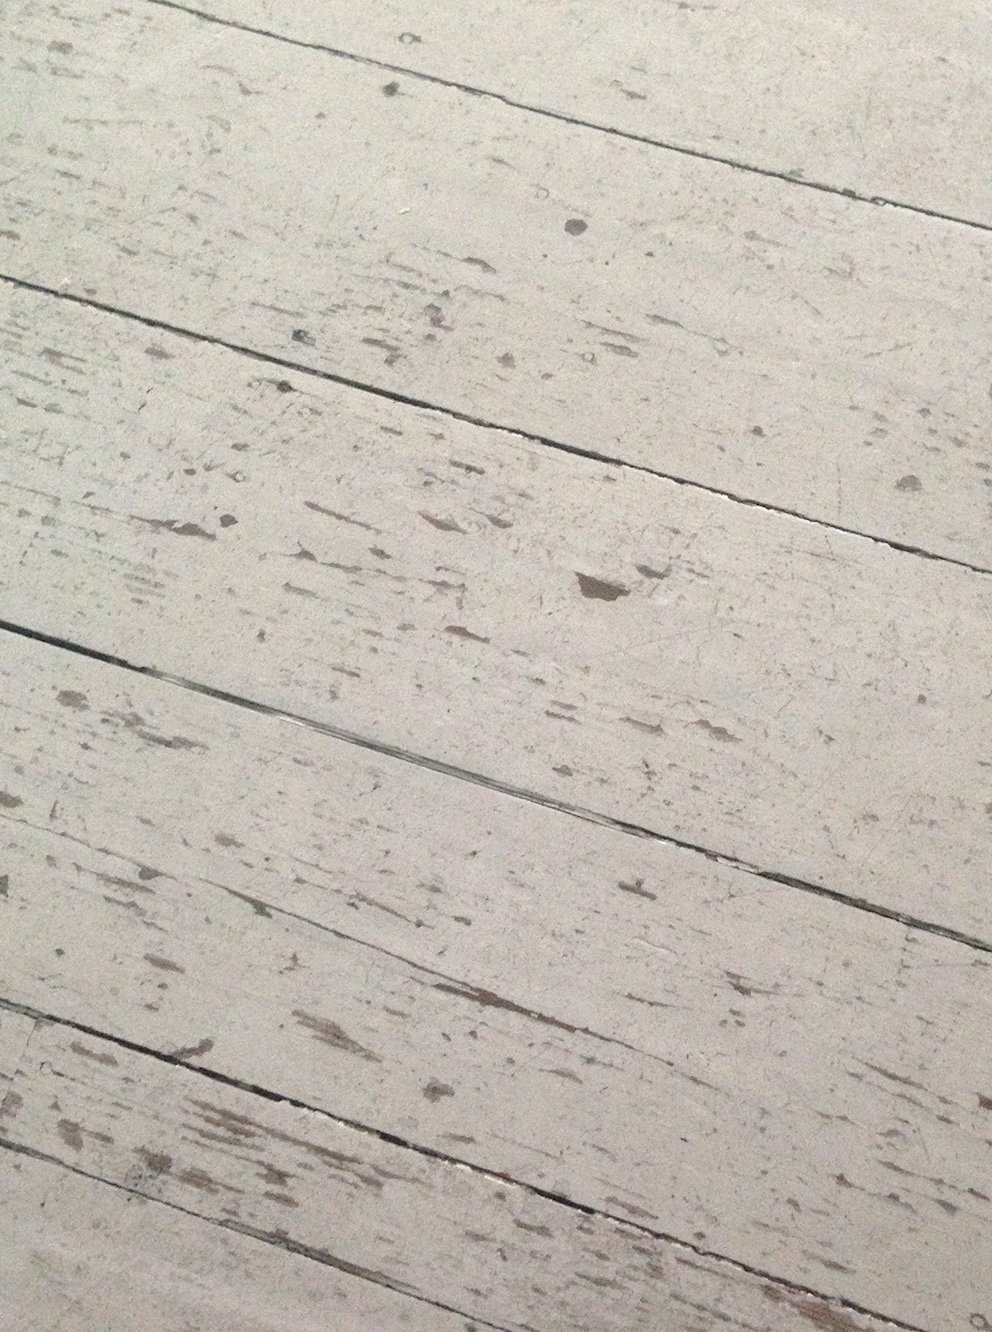 Worn painted floorboards ready for painting